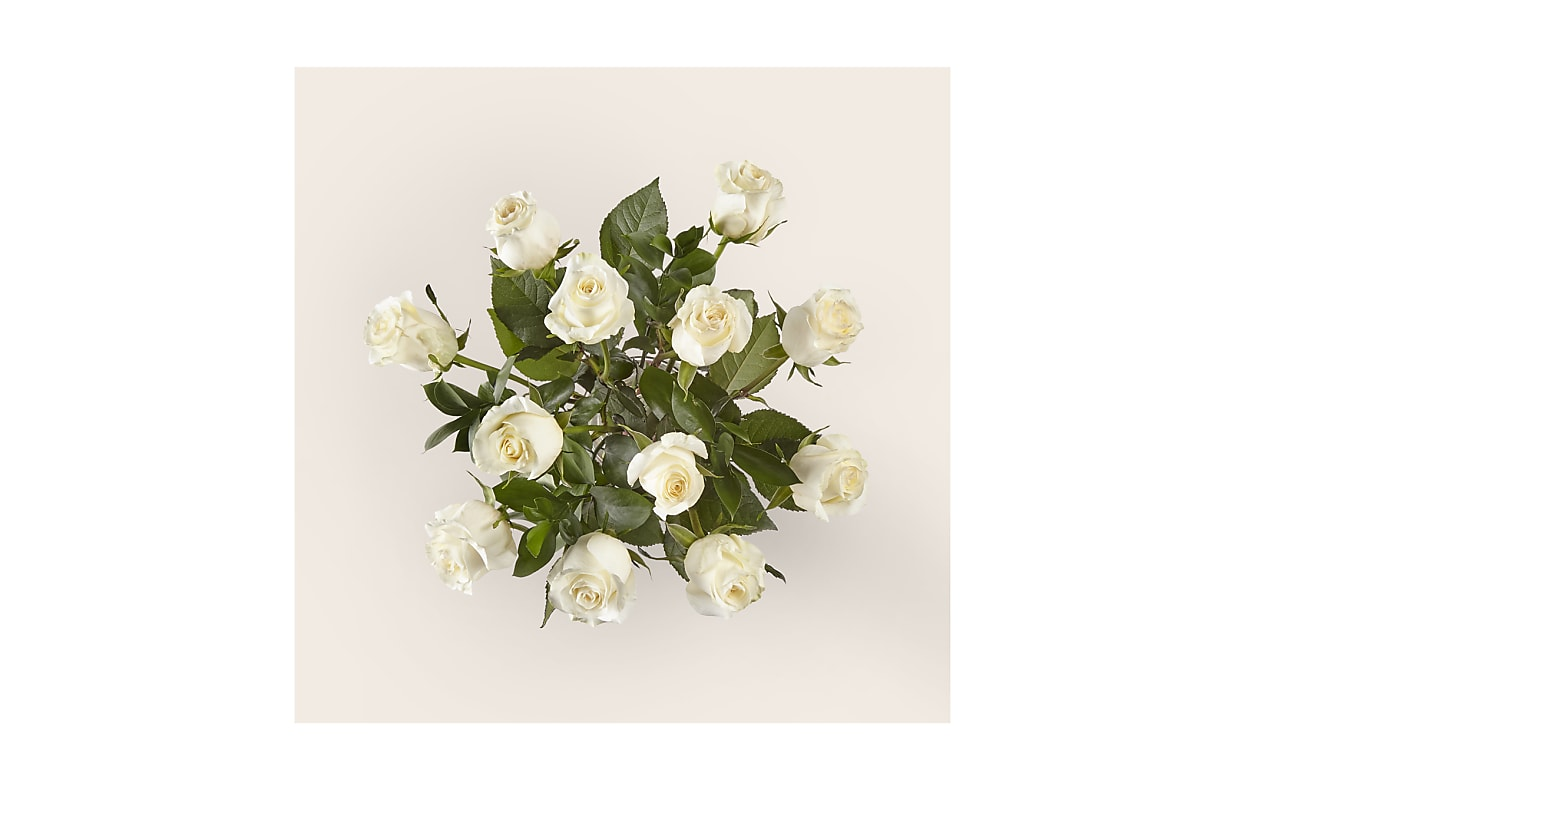 Moonlight White Rose Bouquet - Image 3 Of 3